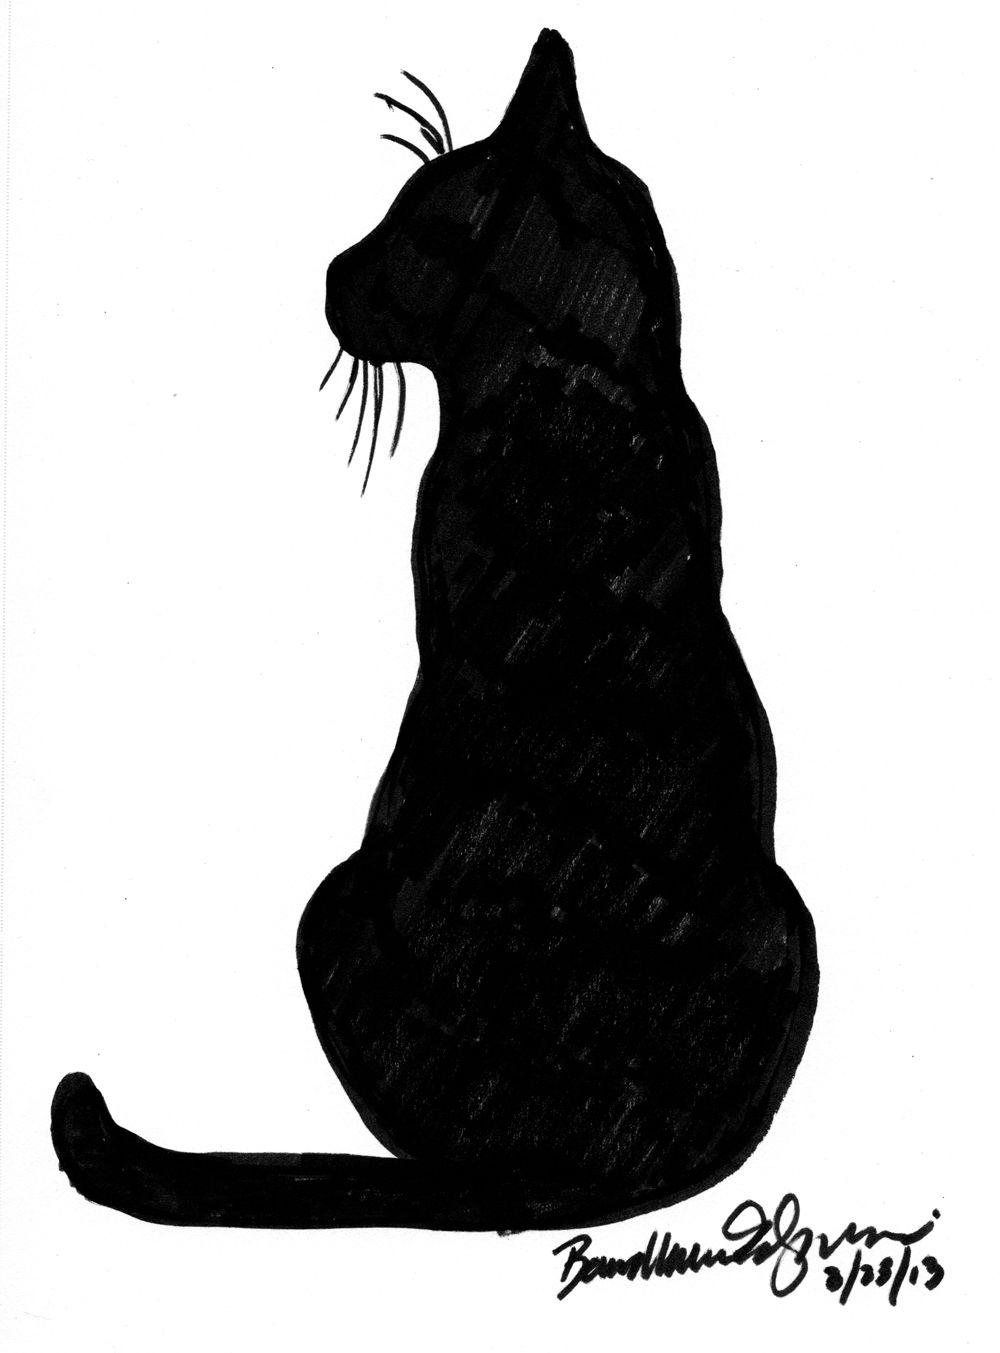 1000x1353 daily sketch alert daily cat sketches black cat tattoos, cat